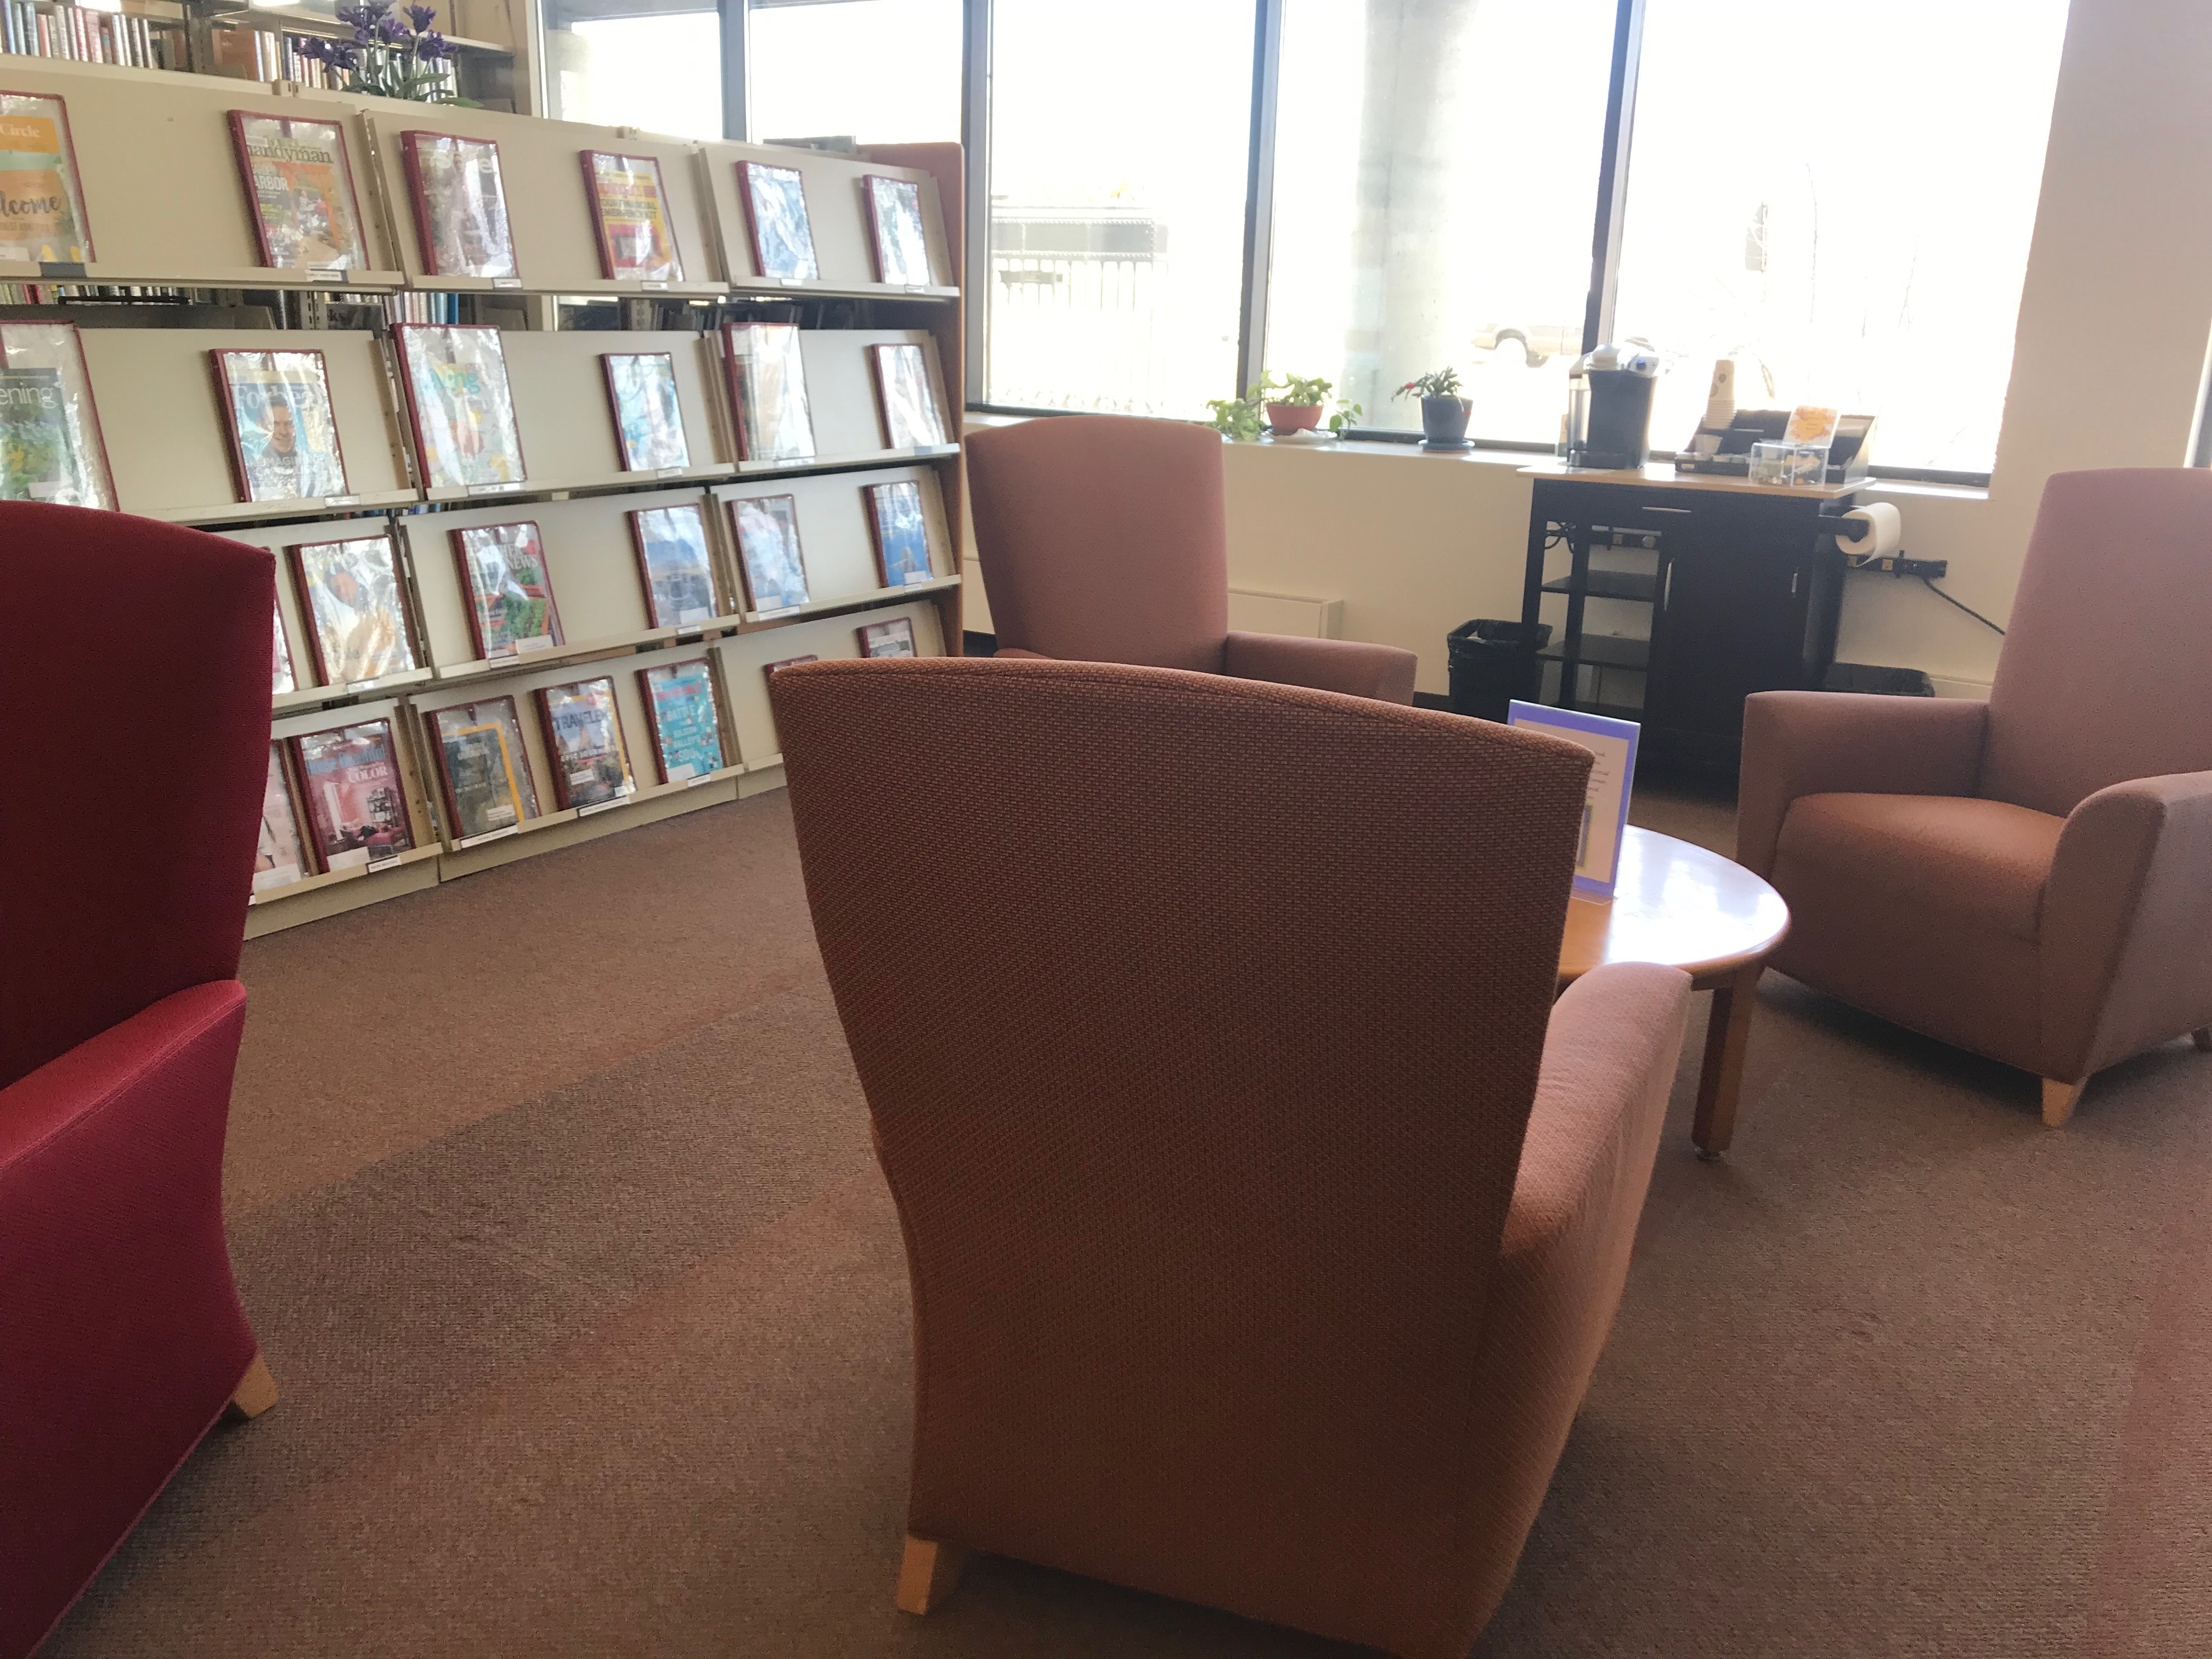 image of reading nook featuring armchairs, magazines, and keurig